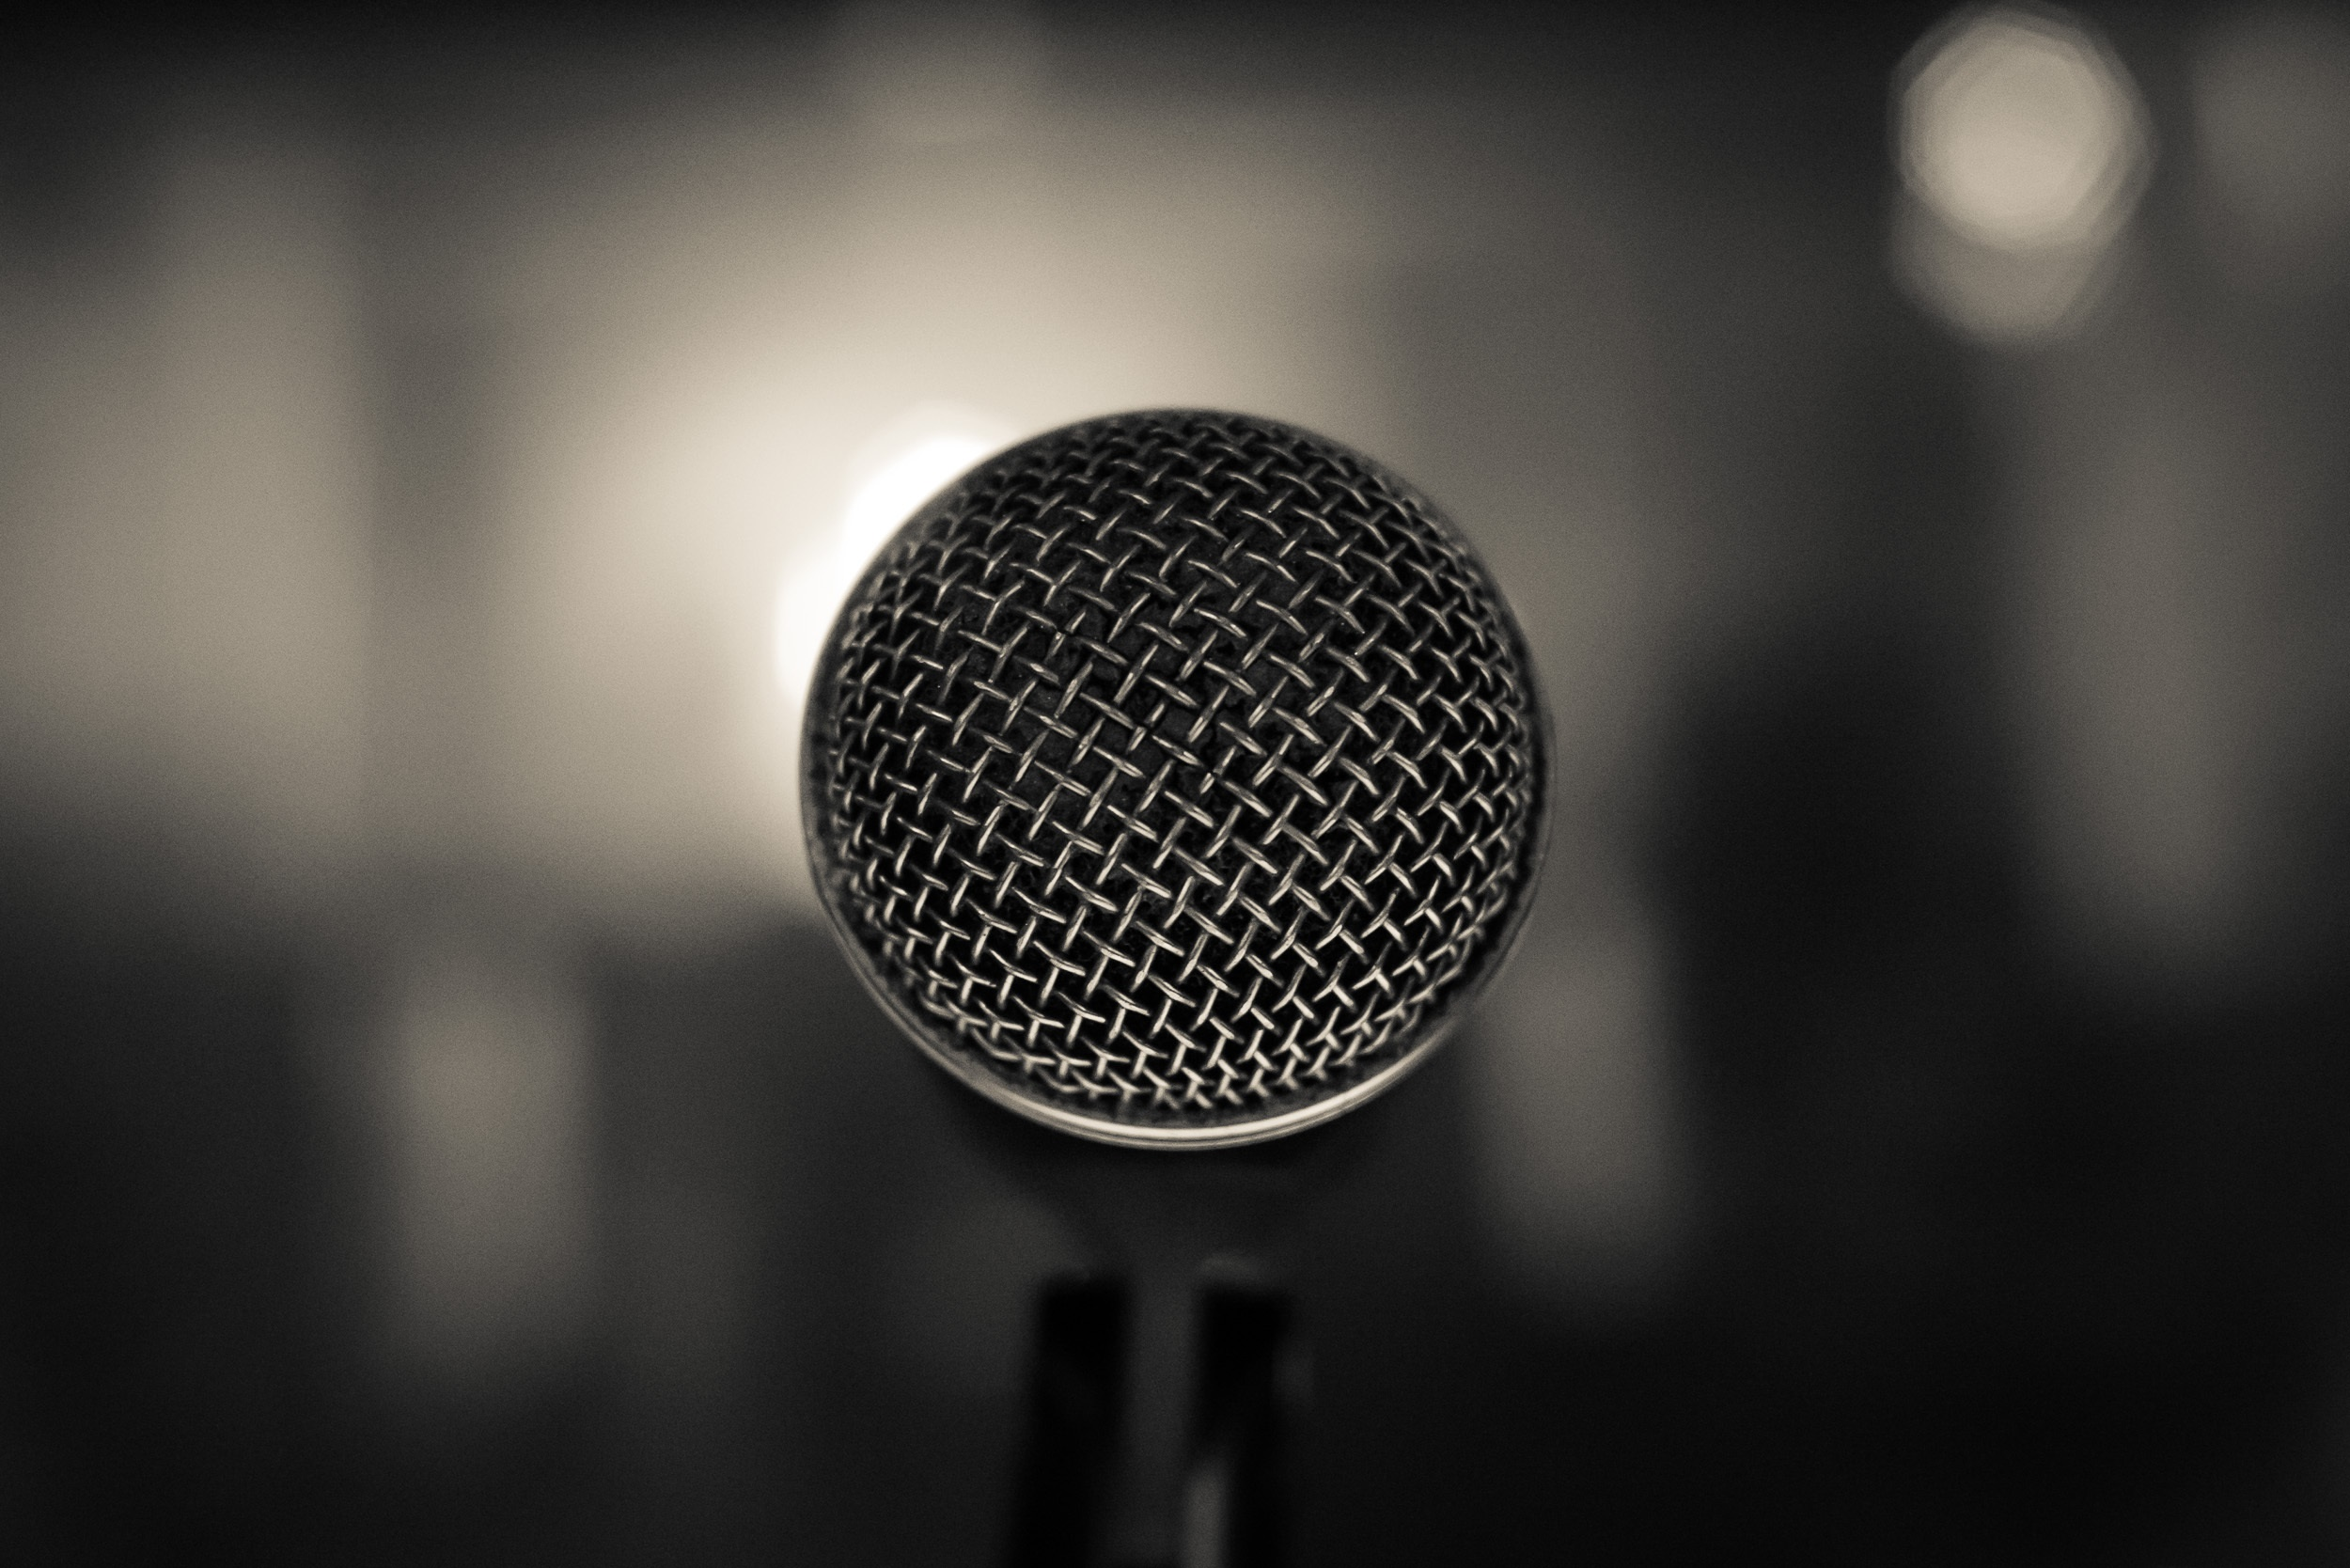 Close-up of a standing microphone with an out-of-focus black and white background.